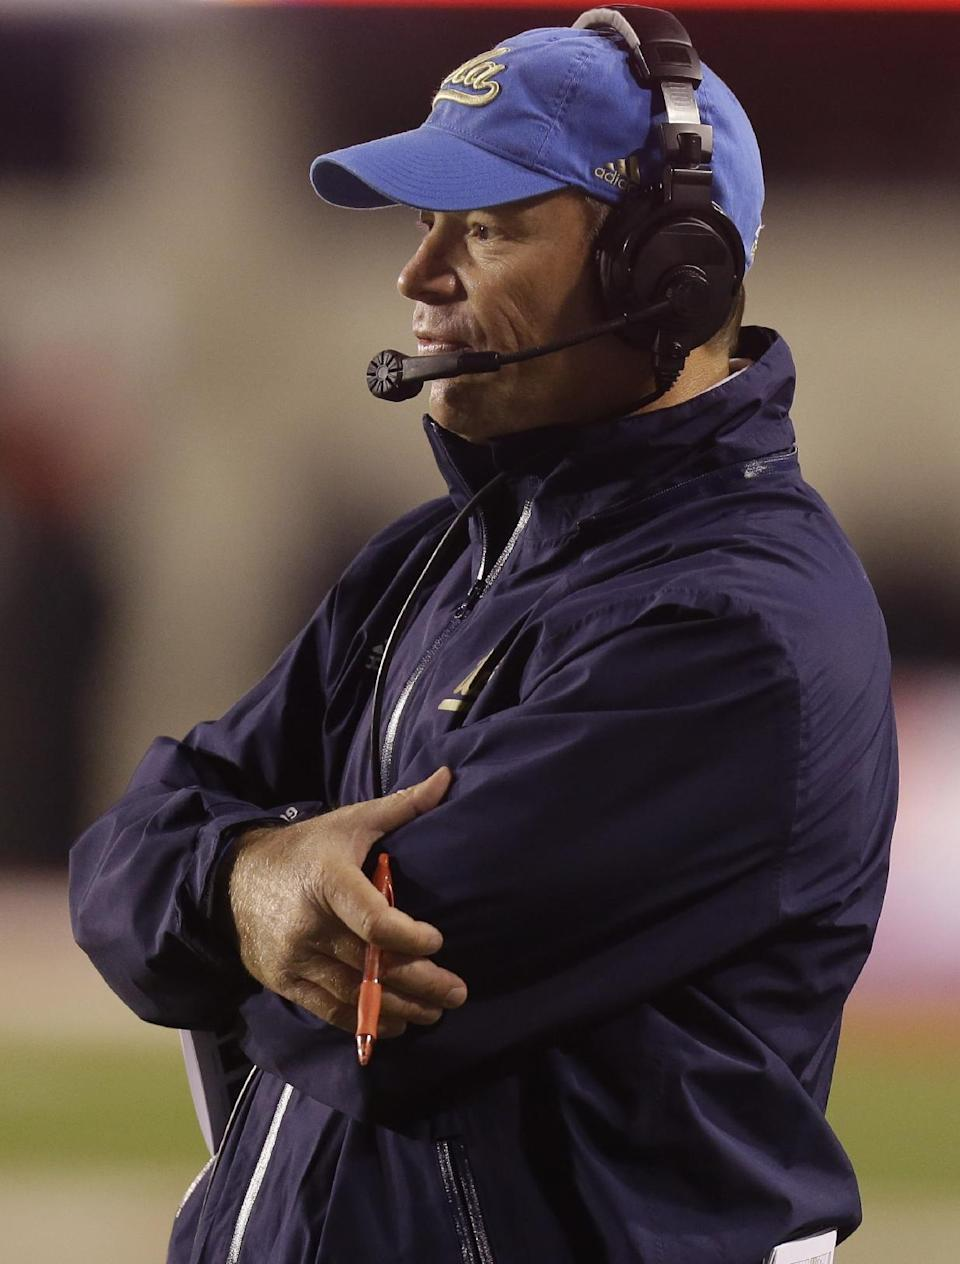 UCLA head coach Jim Mora looks on in the second quarter during an NCAA college football game against Utah Thursday, Oct. 3, 2013, in Salt Lake City. (AP Photo/Rick Bowmer)